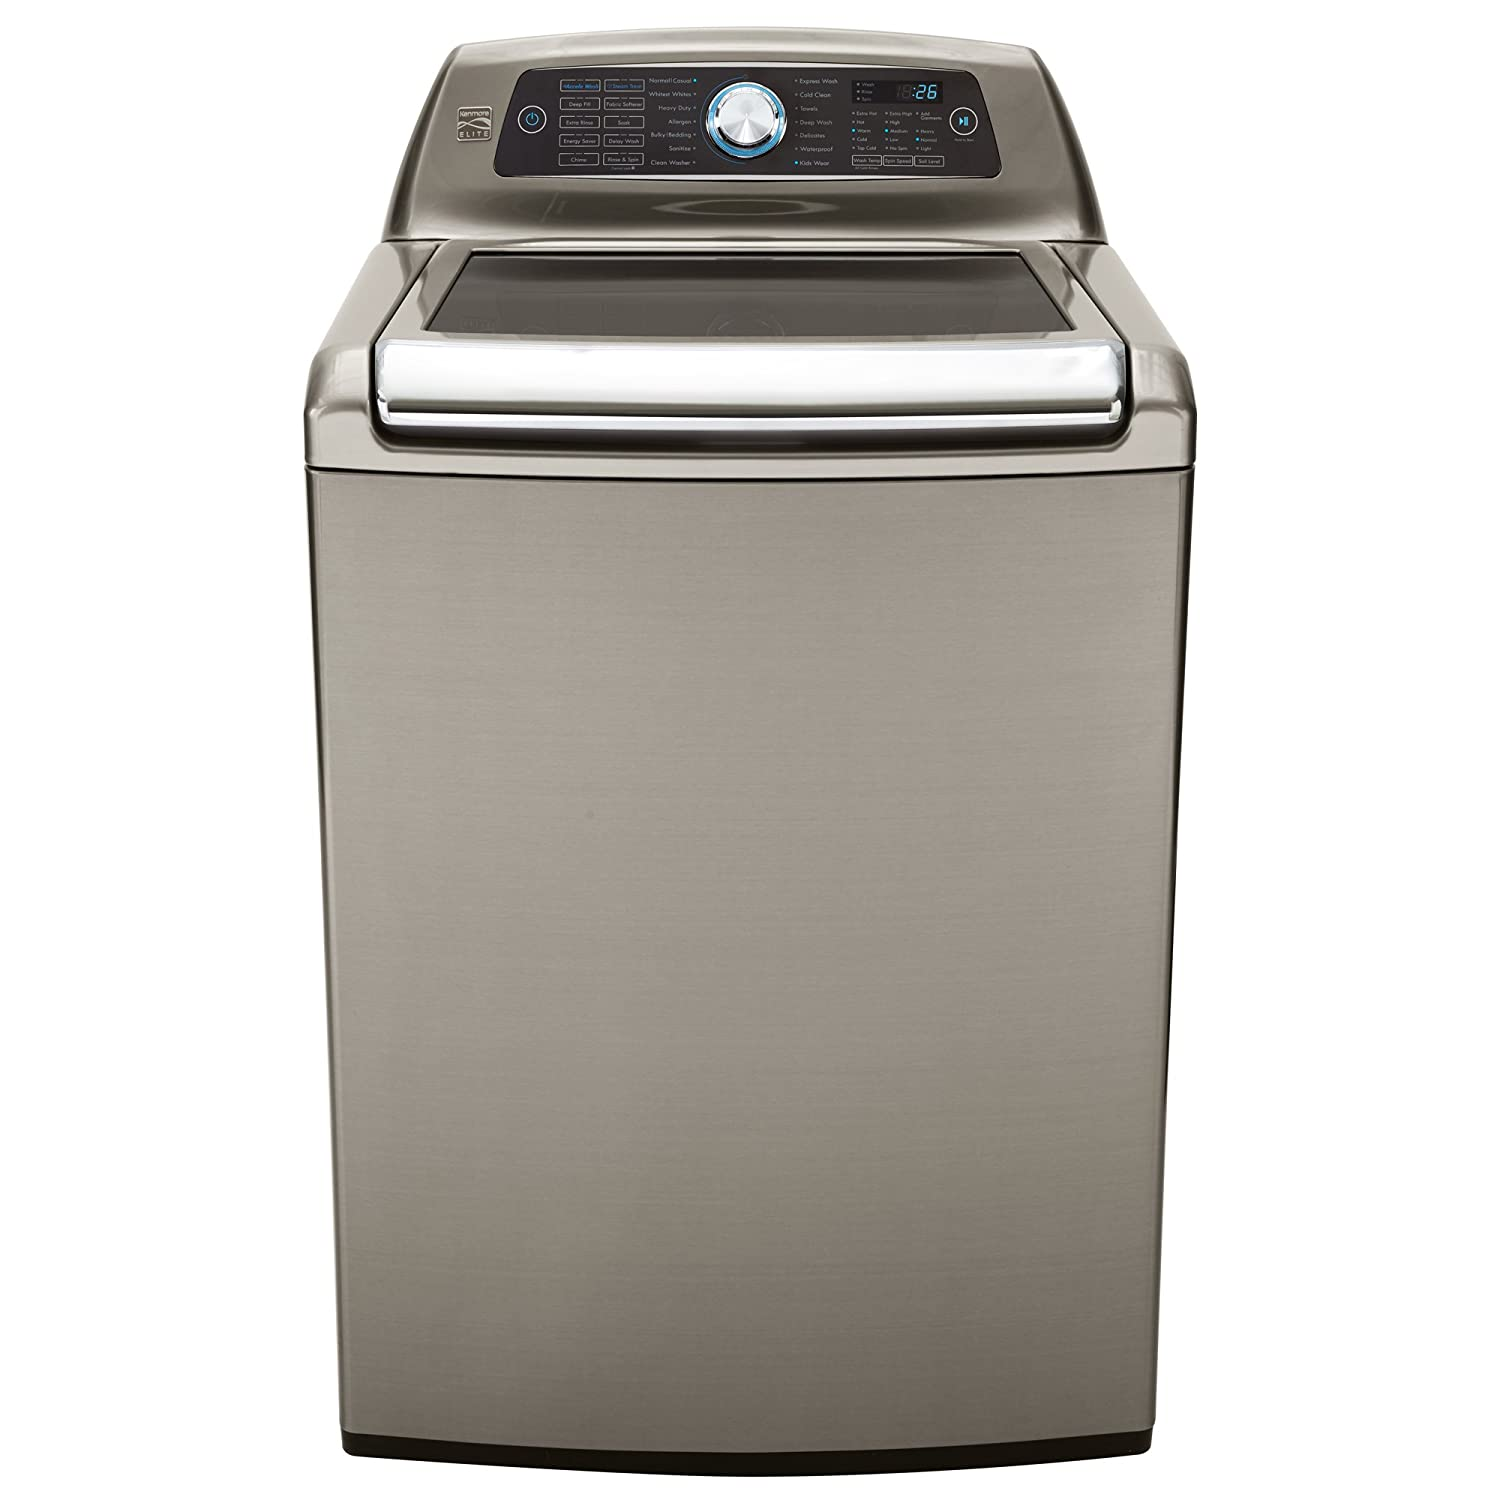 Kenmore Elite 31553 5.2 Cu. Ft. Top Load Washer In Silver, Includes Delivery And Hookup